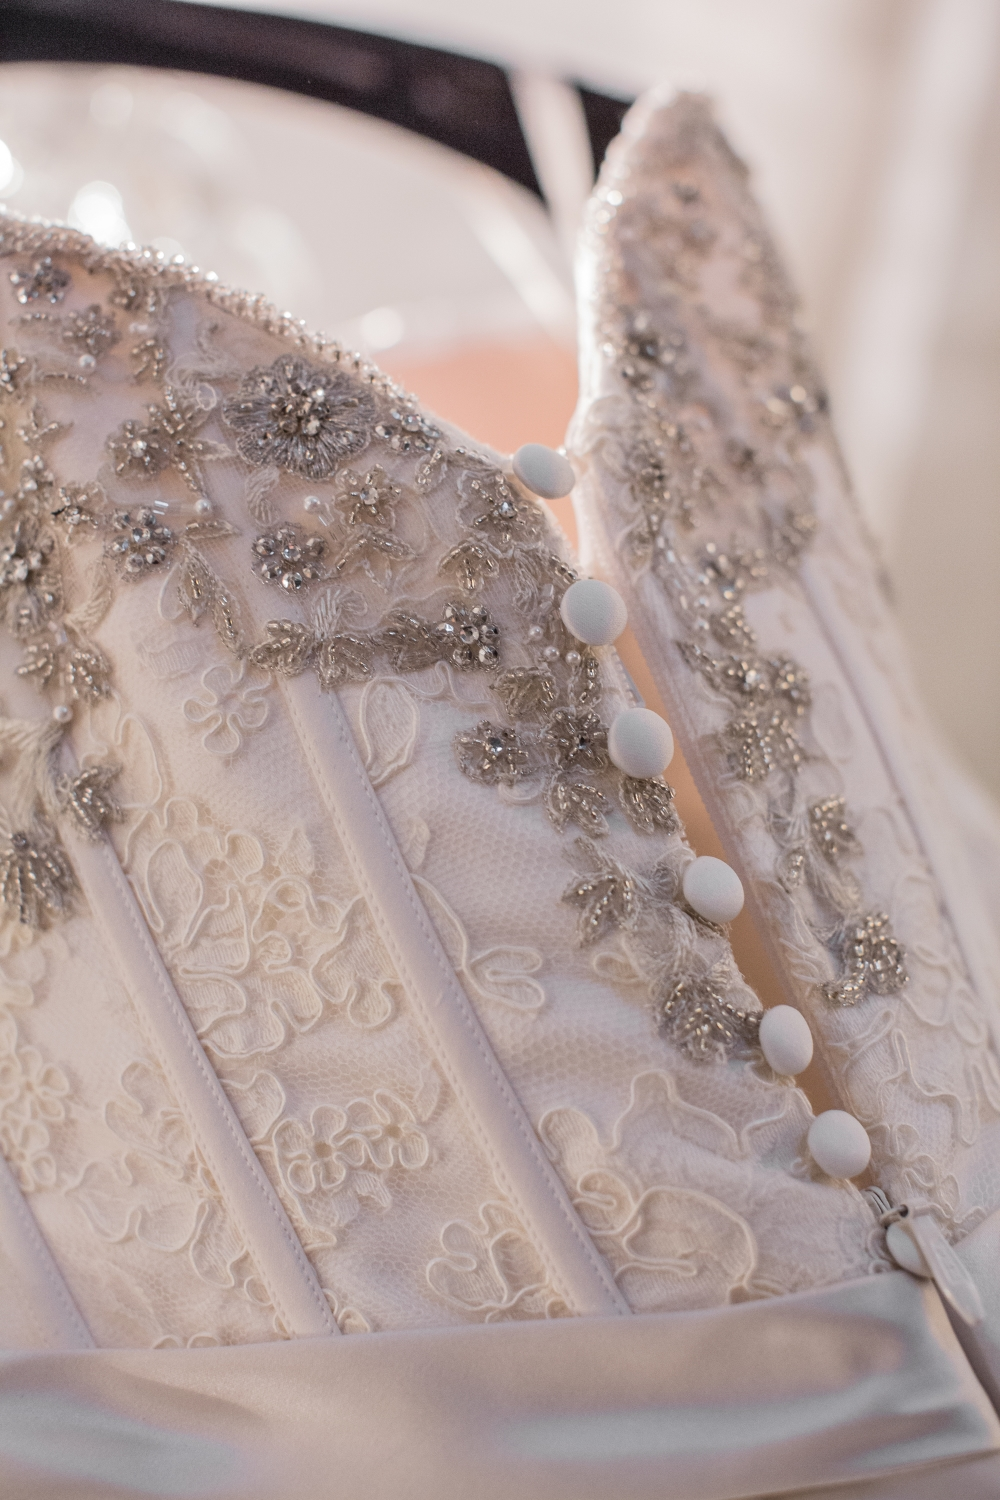 Buttons Down the Back of the Wedding Dress